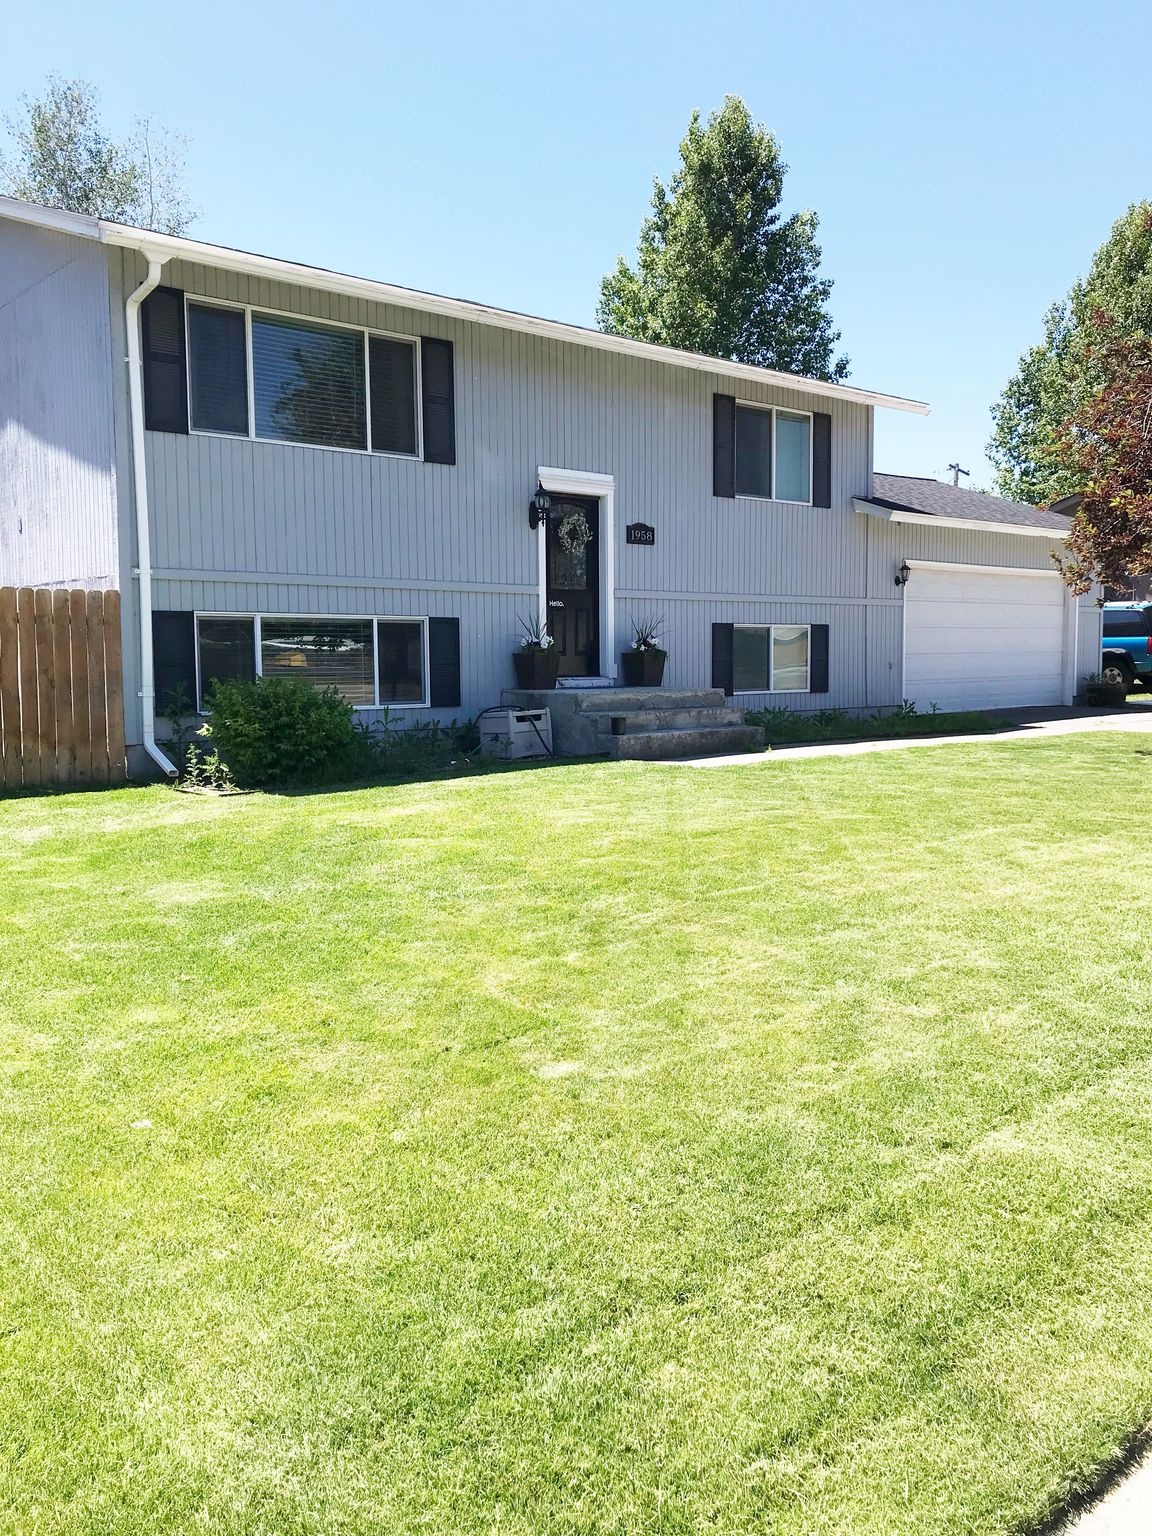 1958 12th St, Idaho Falls, ID 83404 - 4 Bed, 2 Bath Single-Family Home - 21  Photos | Trulia